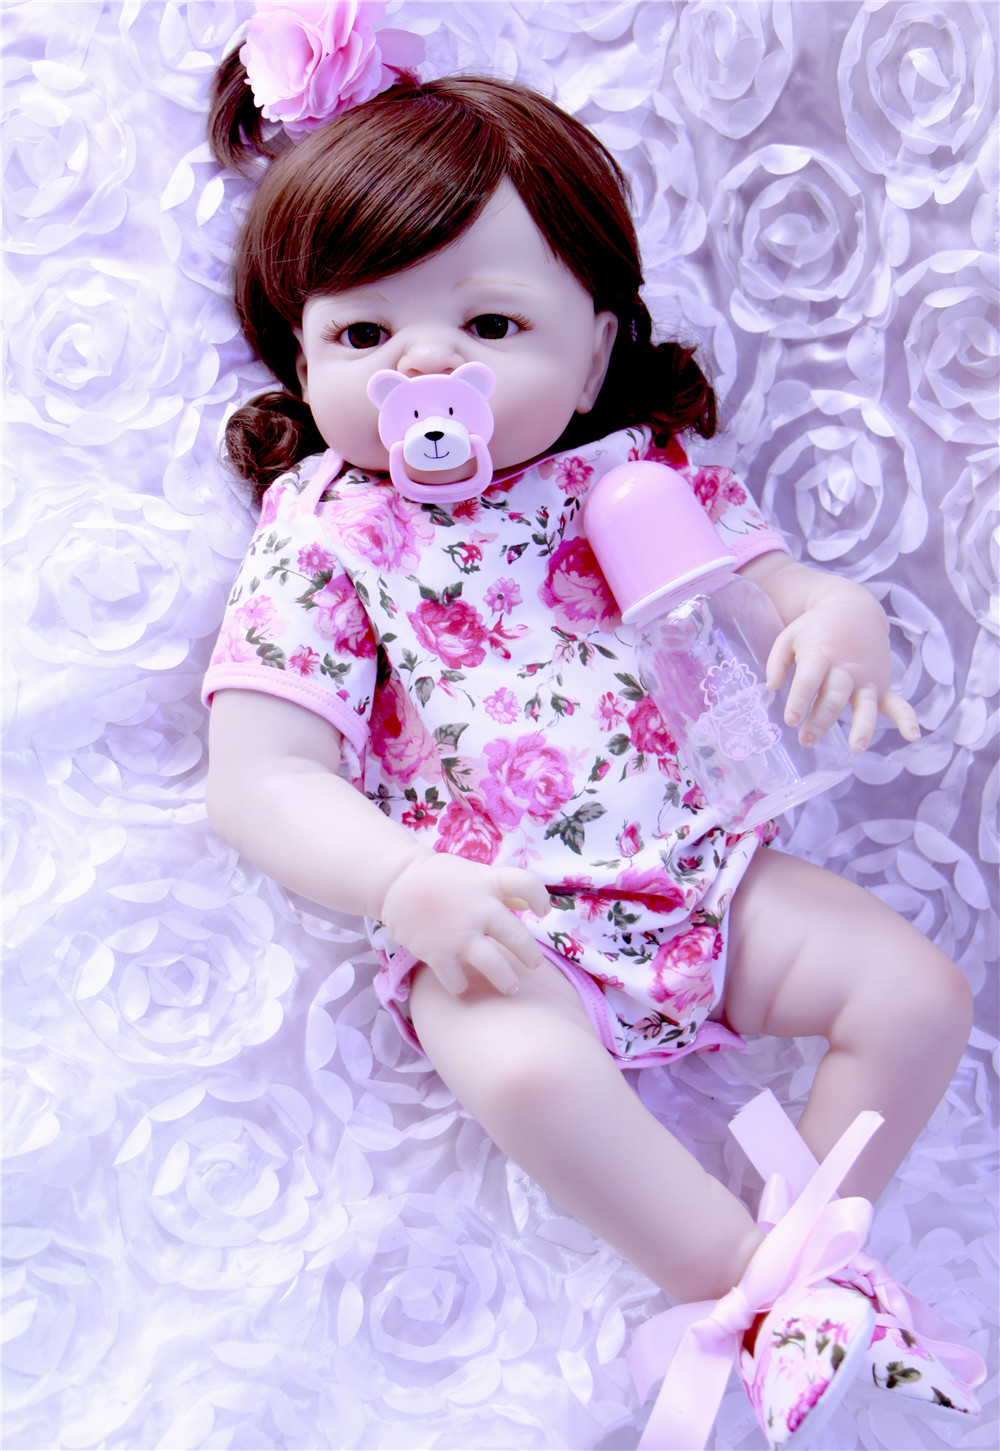 Full silicone reborn baby dolls curly hair girl 2357cm realistic reborn babies alive dolls toys for children bebe gift rebornFull silicone reborn baby dolls curly hair girl 2357cm realistic reborn babies alive dolls toys for children bebe gift reborn